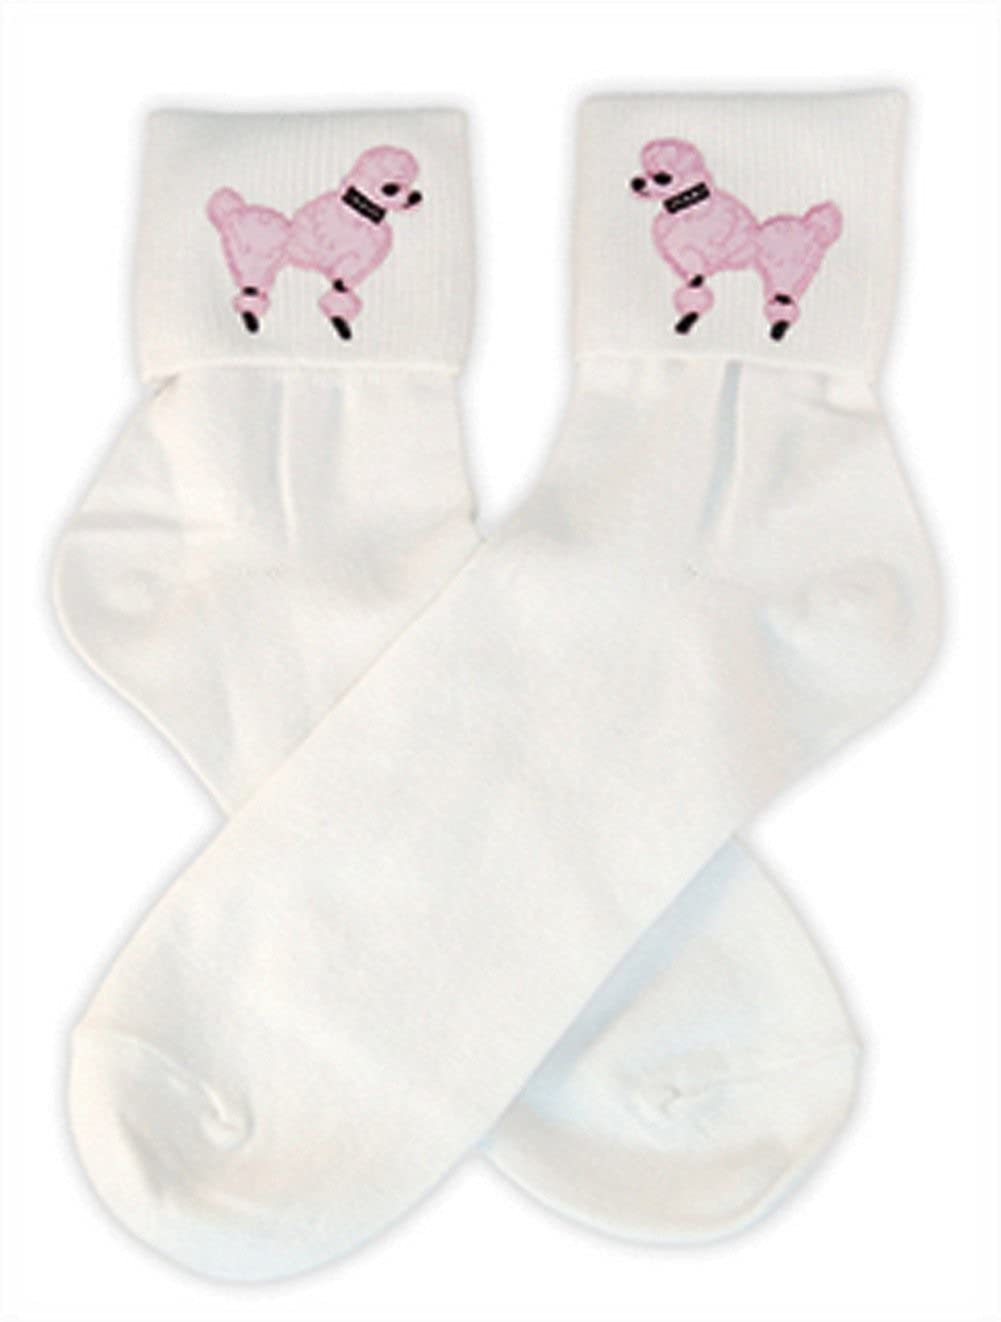 Vintage Socks | 1920s, 1930s, 1940s, 1950s, 1960s History  Bobby Sock W/Poodle Applique $9.84 AT vintagedancer.com